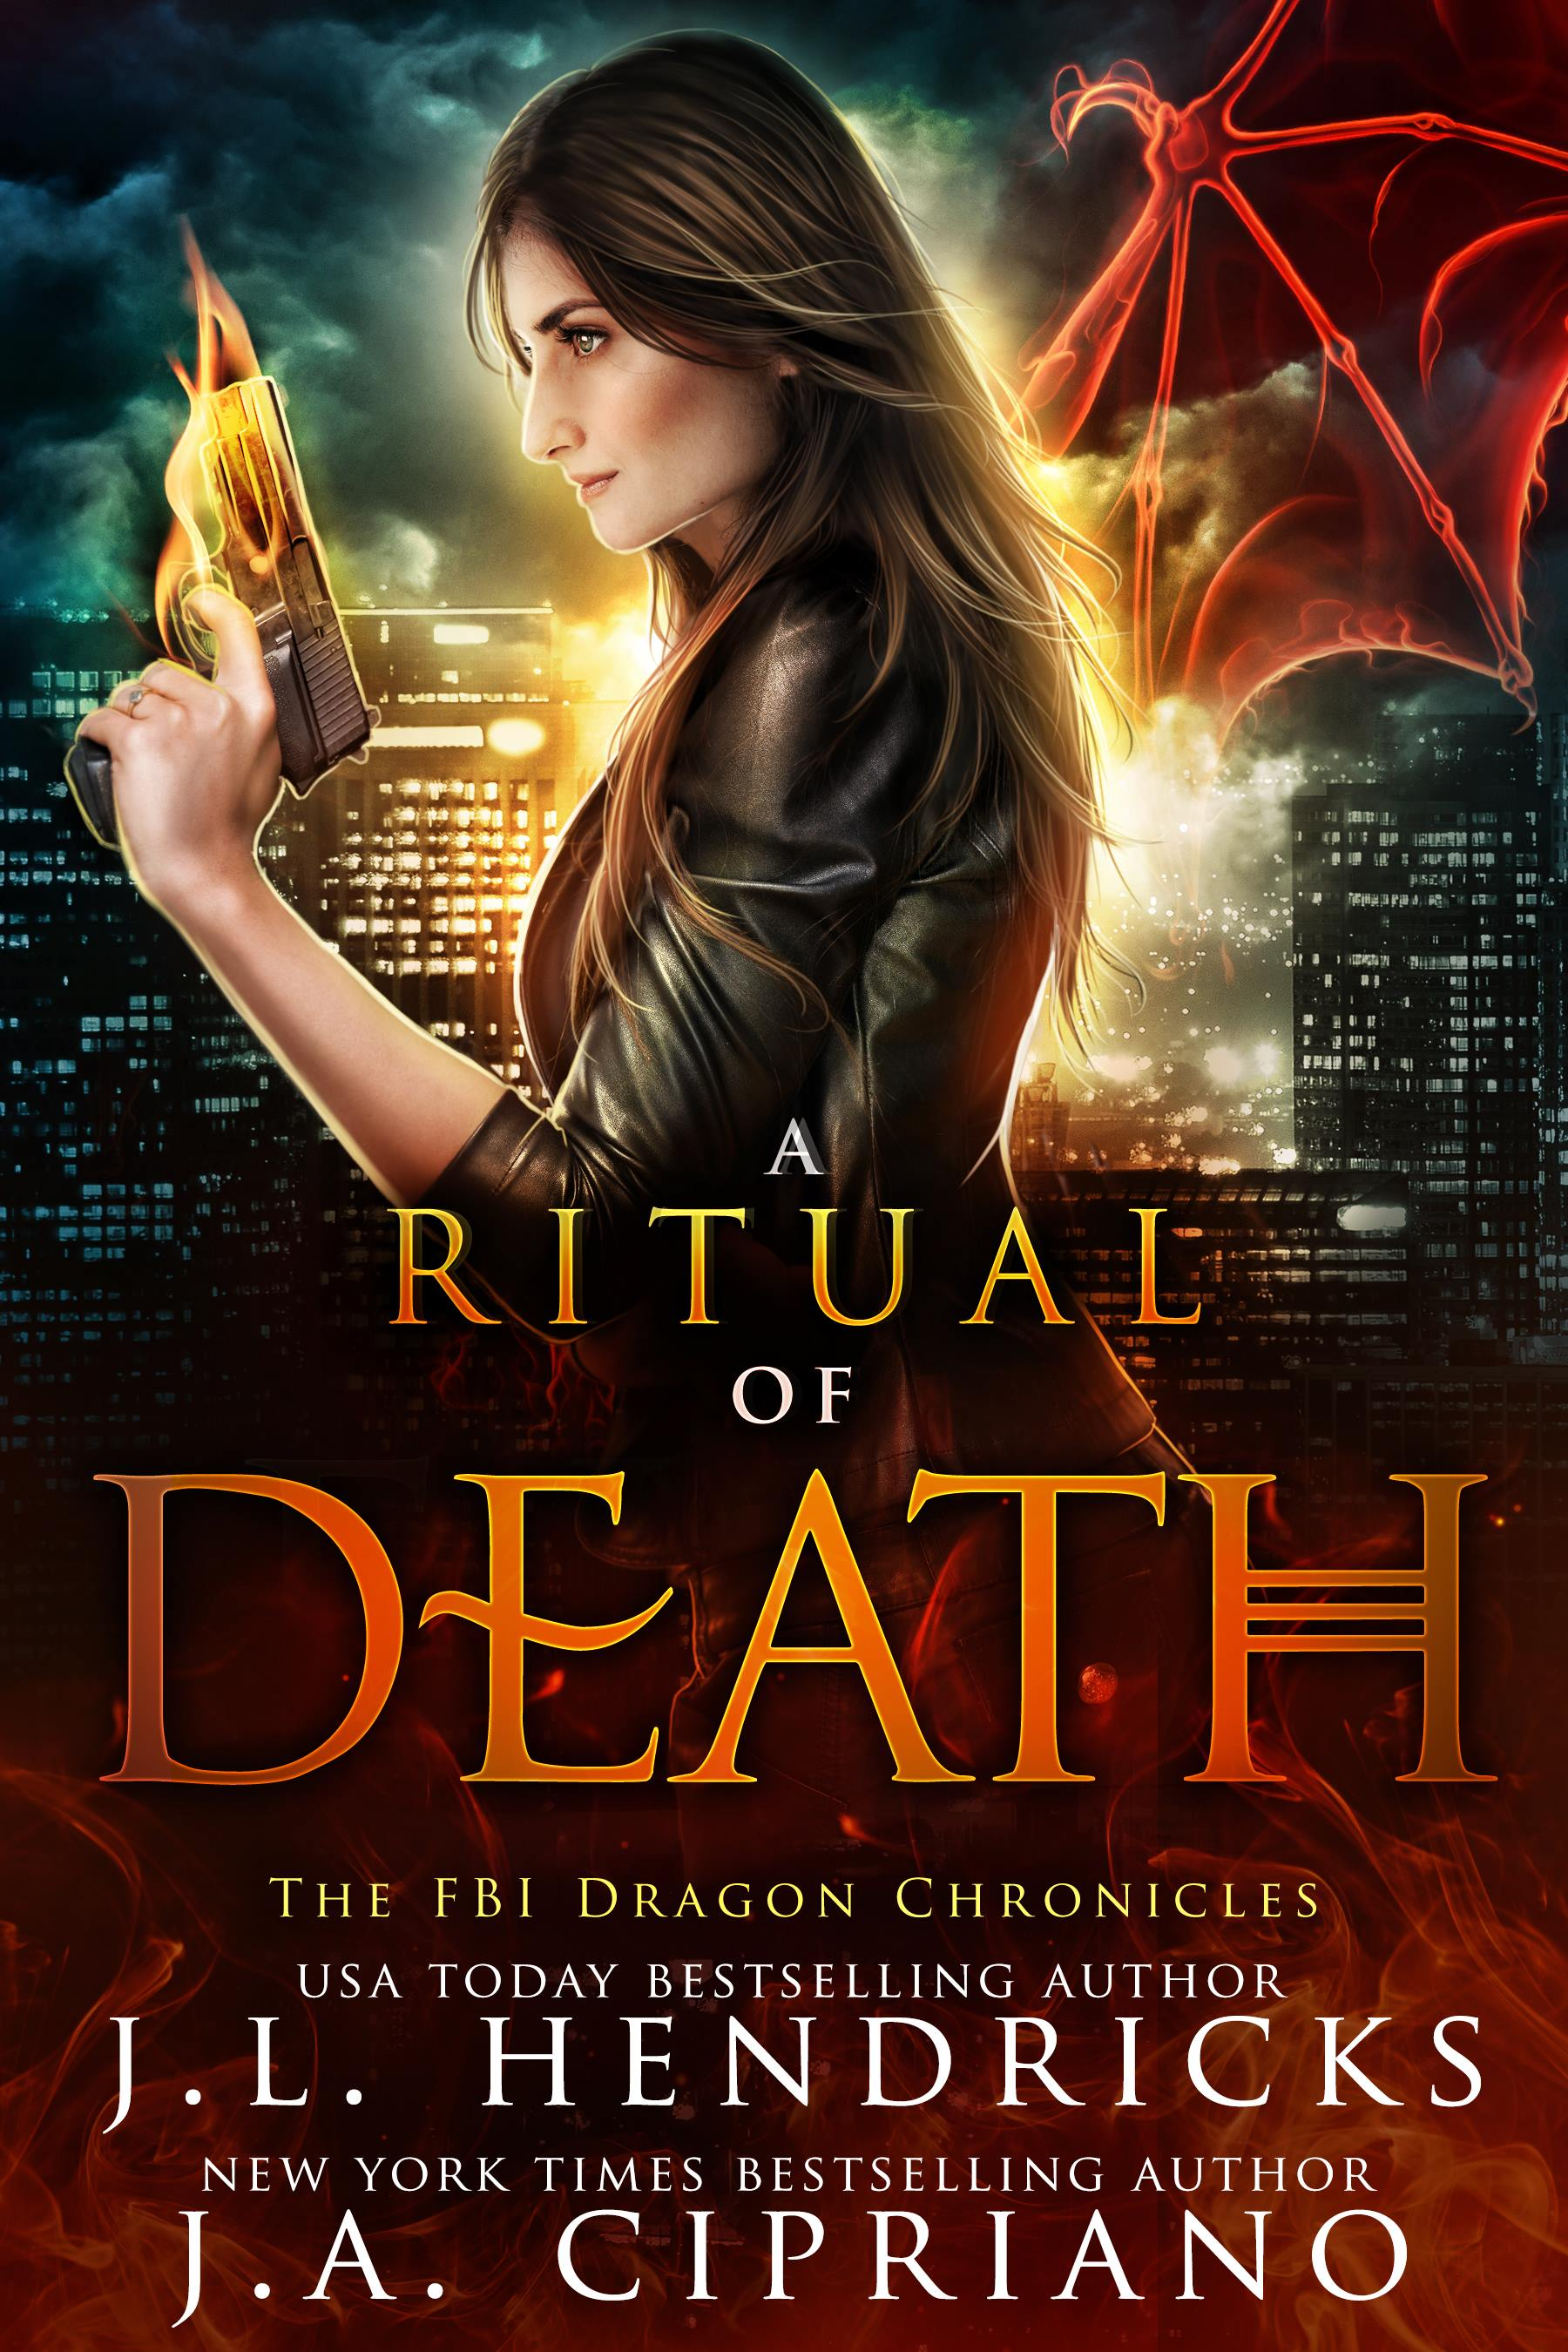 FBI Dragon Chronicles Book 2: A Ritual of Death